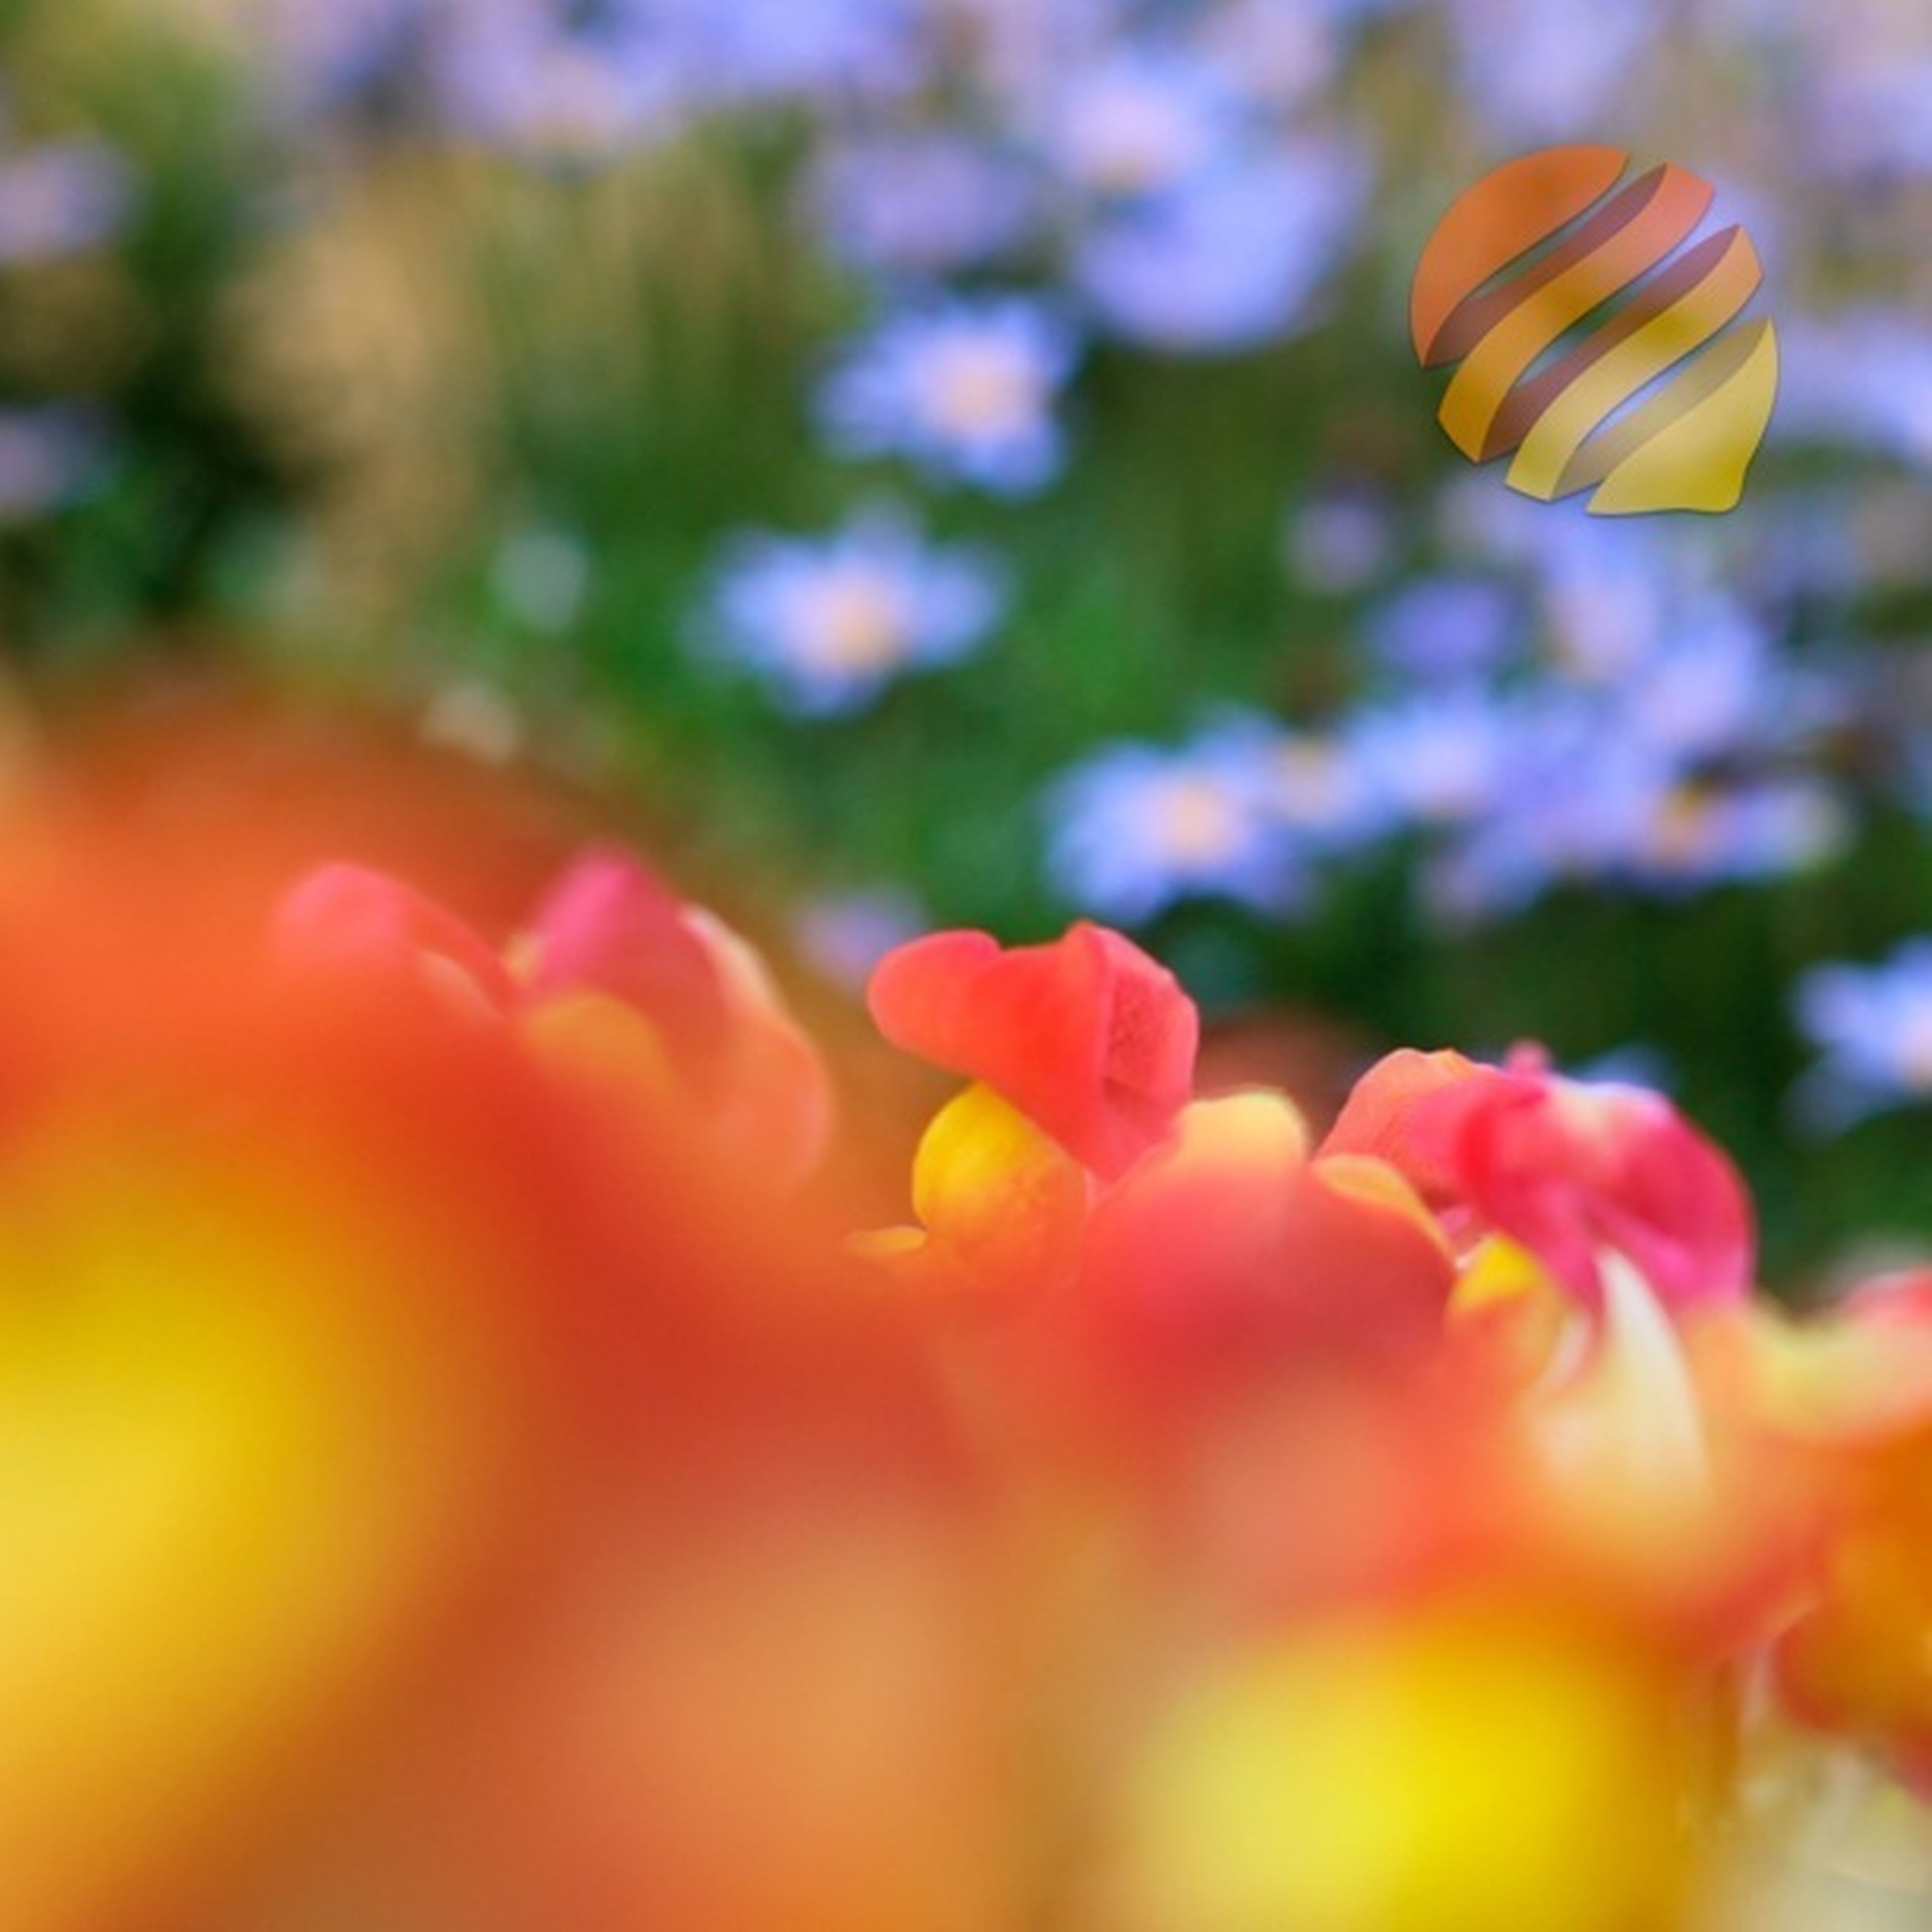 flower, petal, fragility, focus on foreground, freshness, growth, beauty in nature, selective focus, close-up, yellow, flower head, blooming, nature, plant, park - man made space, in bloom, outdoors, day, no people, multi colored